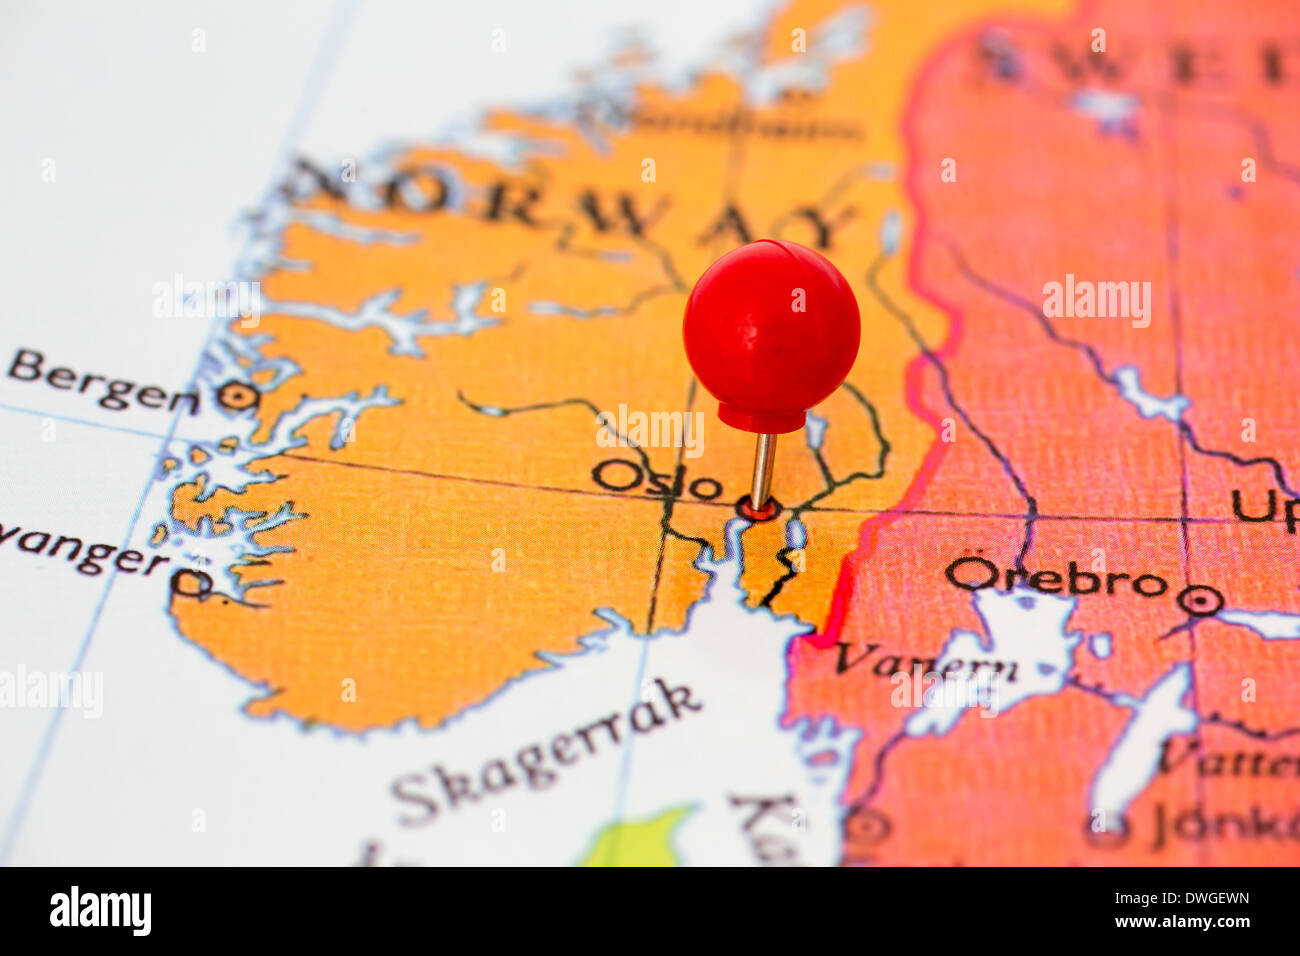 Norway On Map Of Europe.Oslo Map Europe Norway Stock Photos Oslo Map Europe Norway Stock